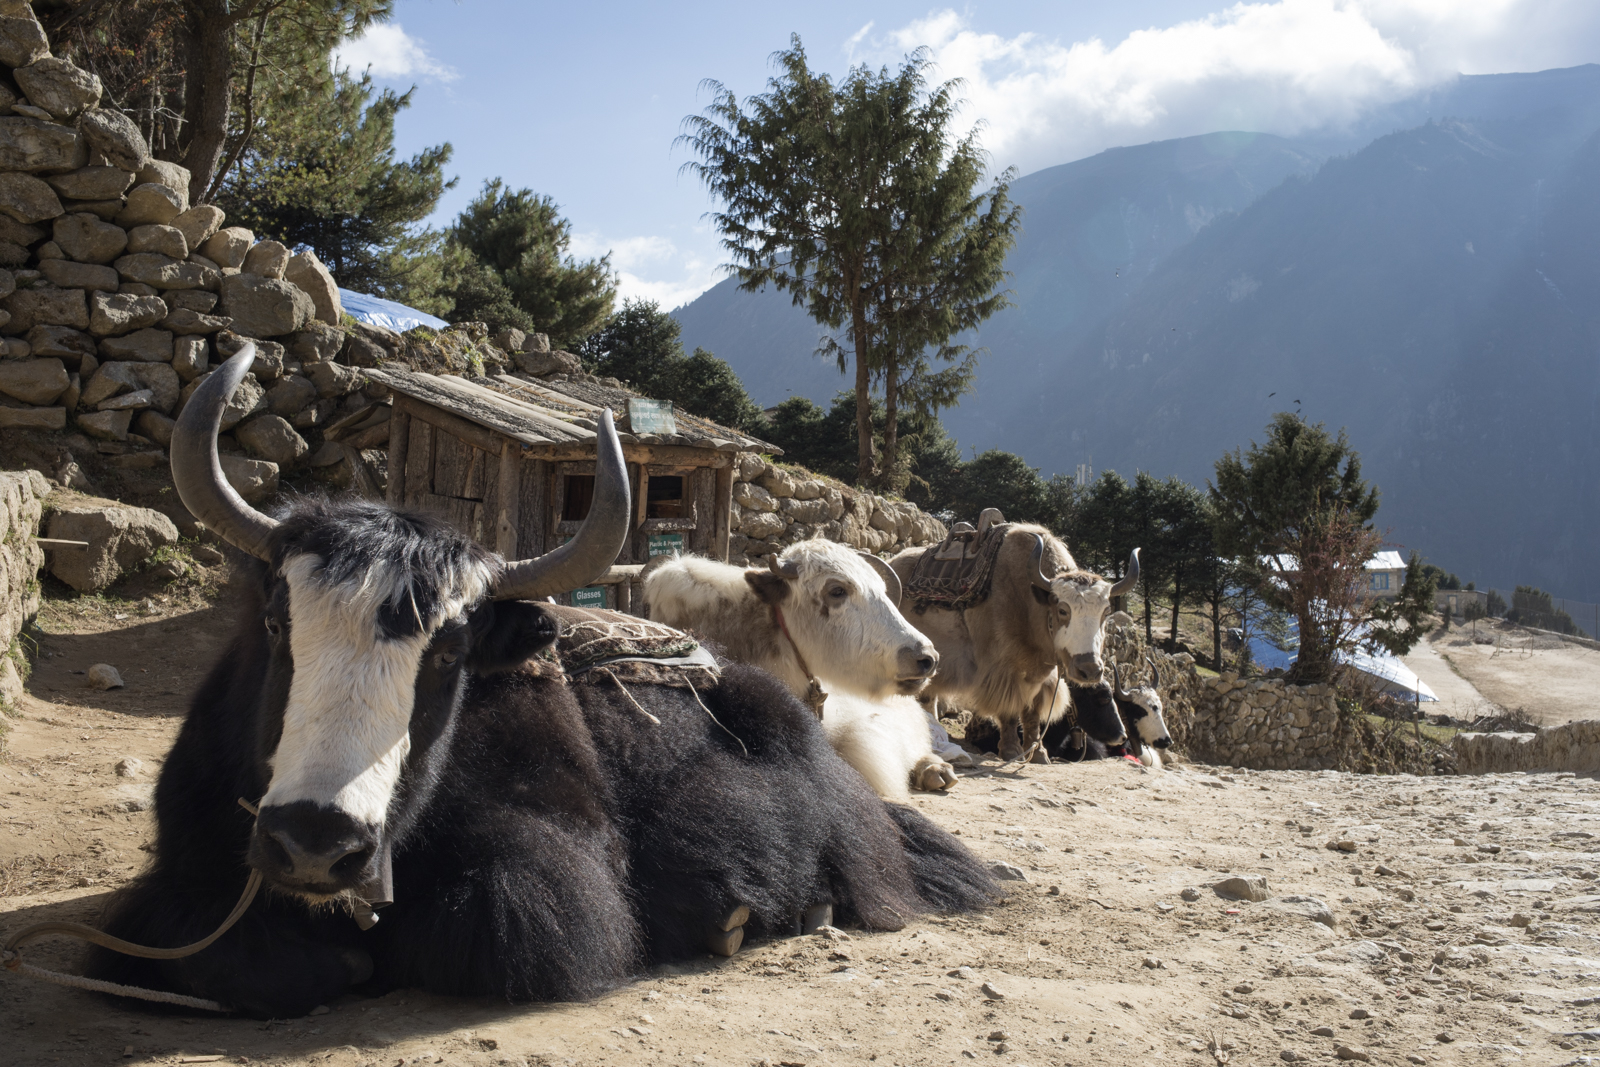 Yak rest along the upper road near Namche Baazar.